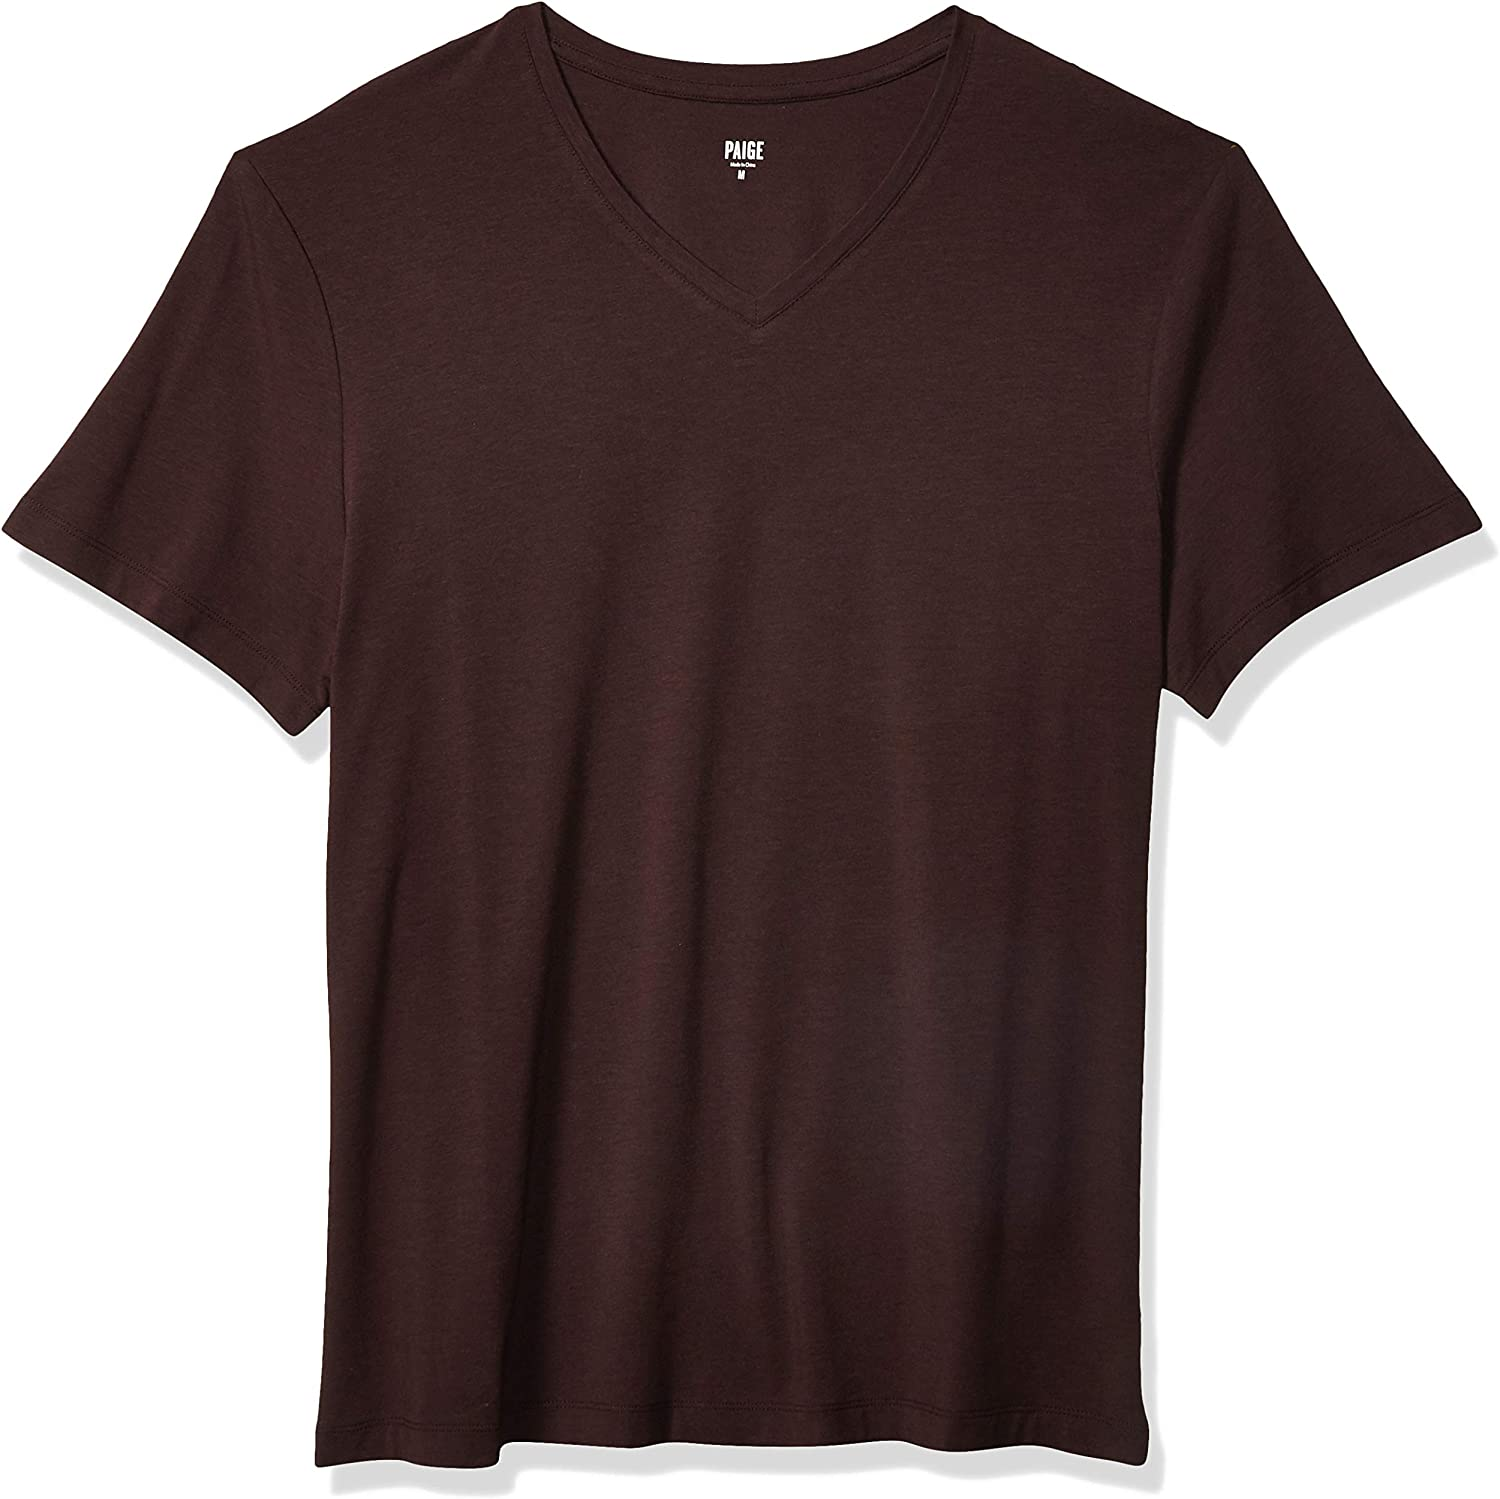 PAIGE Mens Grayson V-Neck